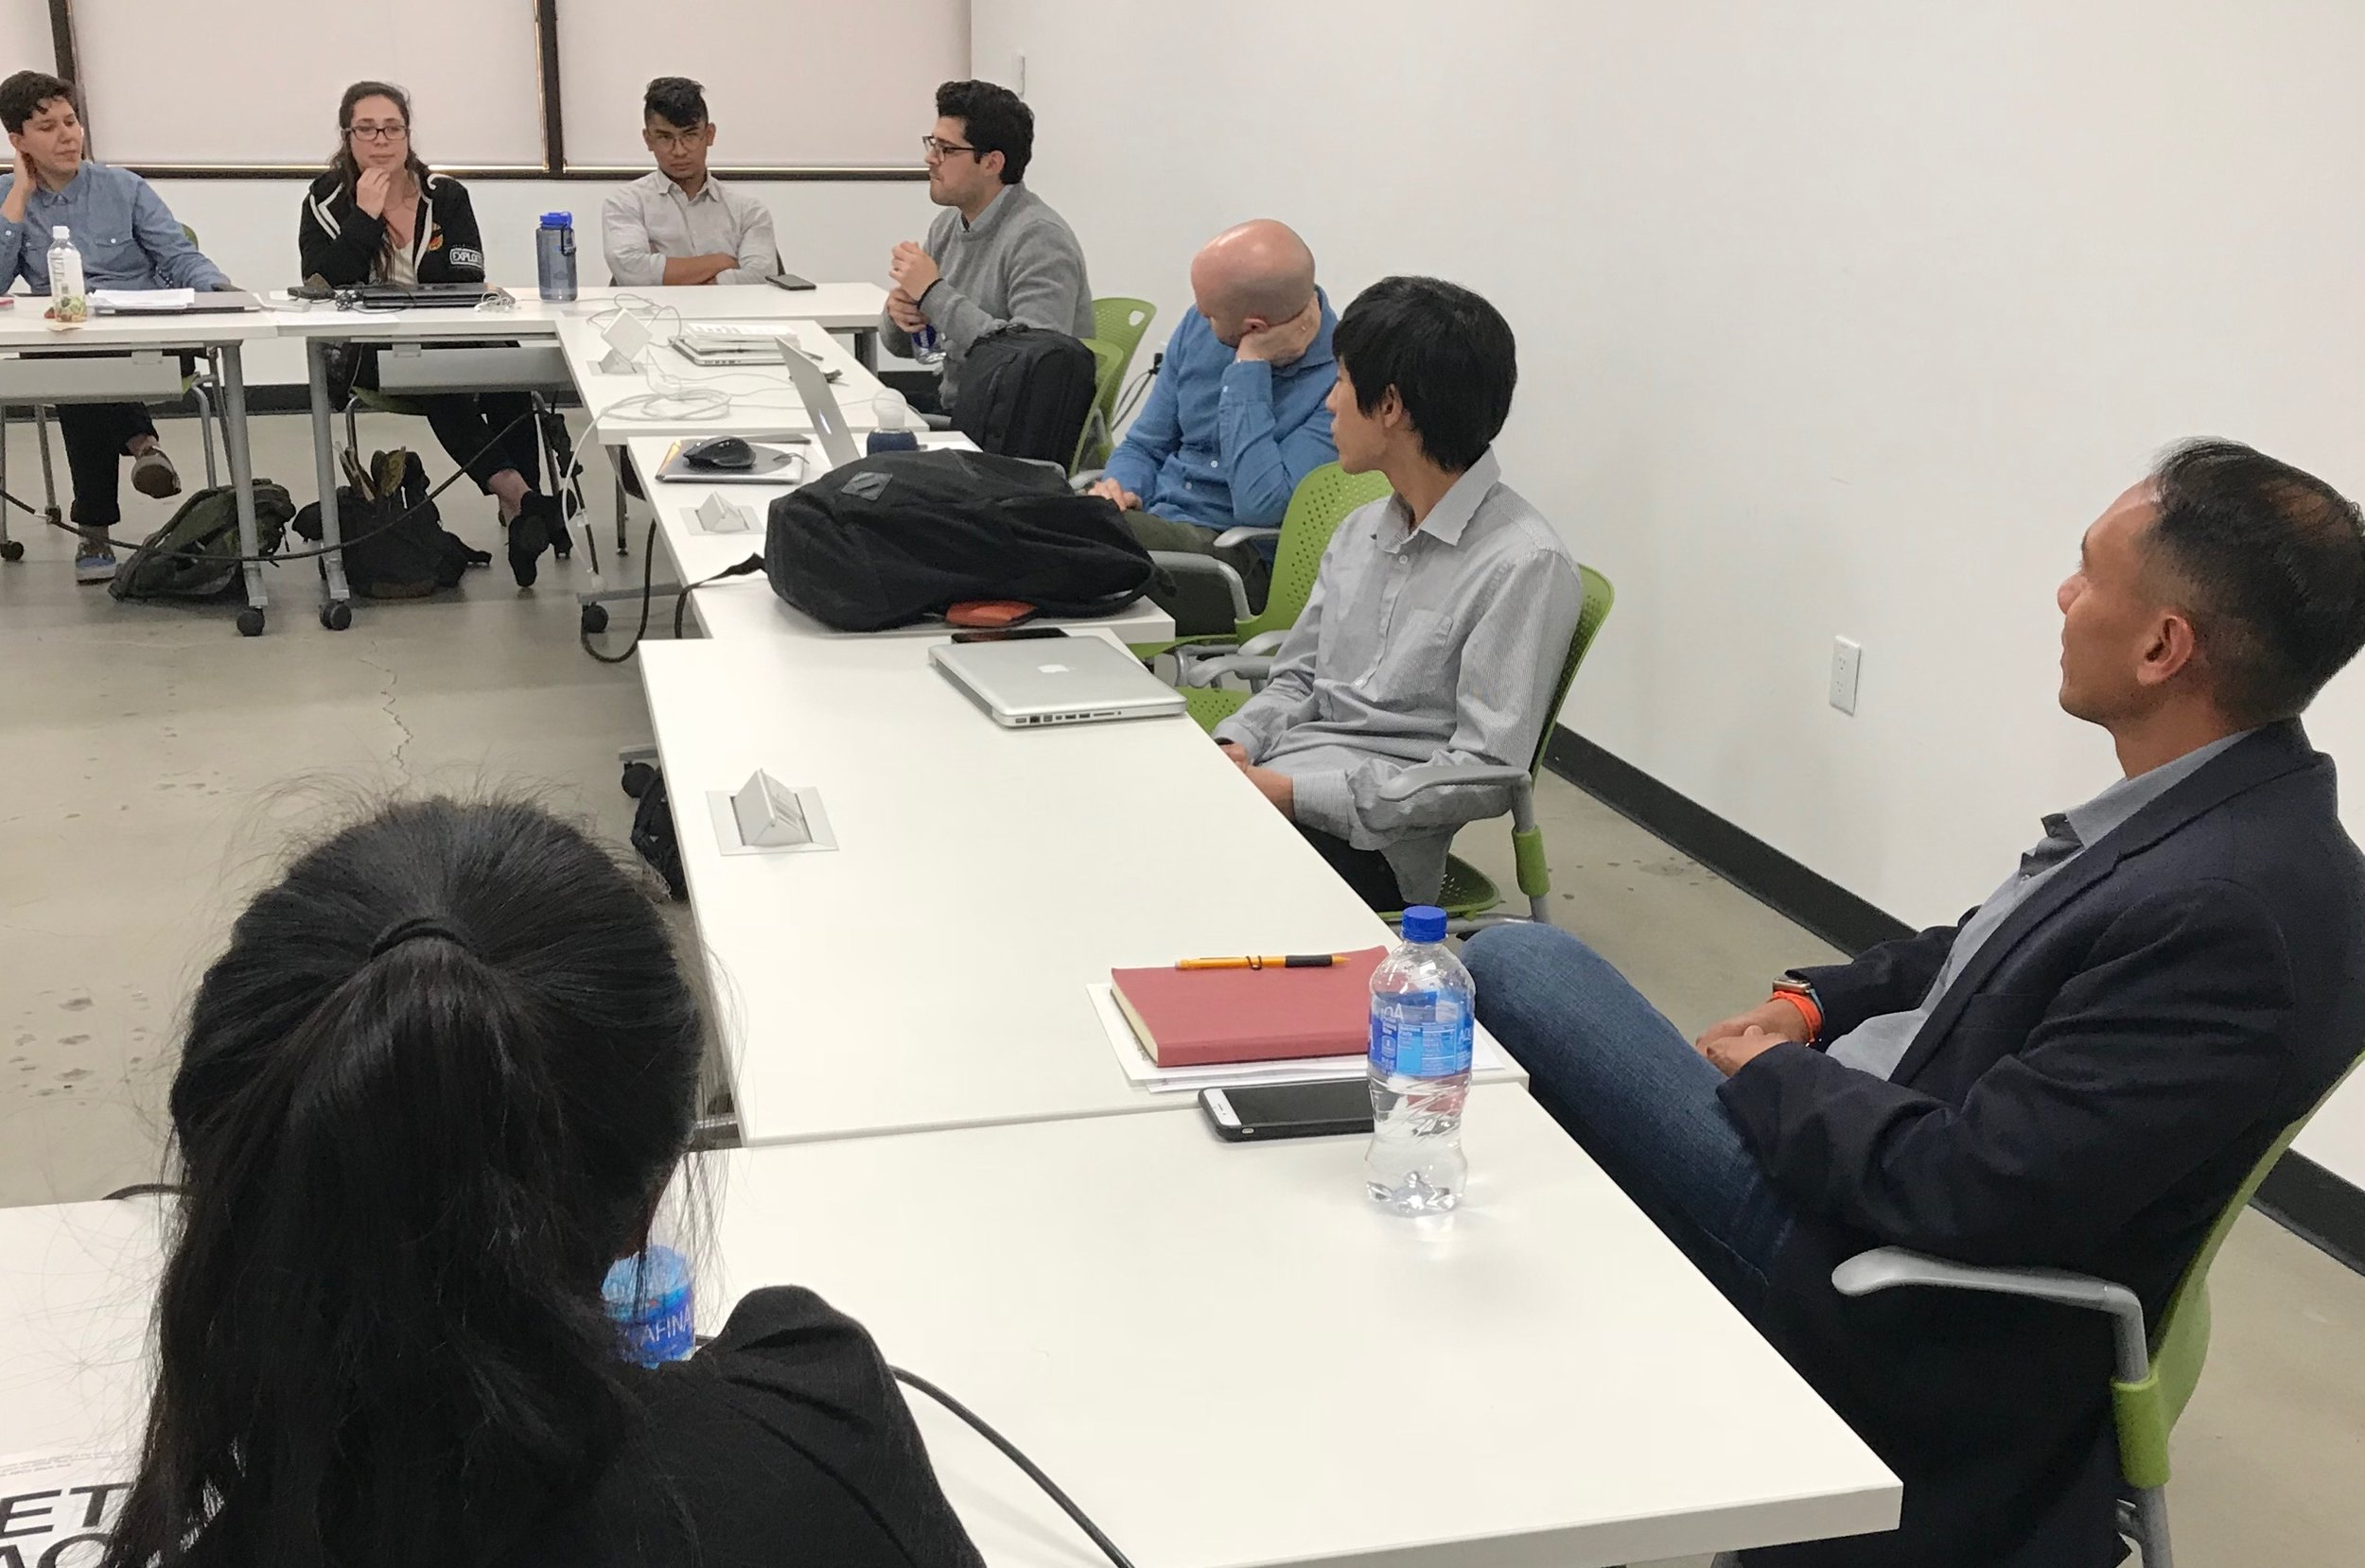 Students interact with Agnes Carrera and Percival Carino (former Crafting a Meaningful Career participants) during mock job interviews in the Presentation and Career Preparation class.